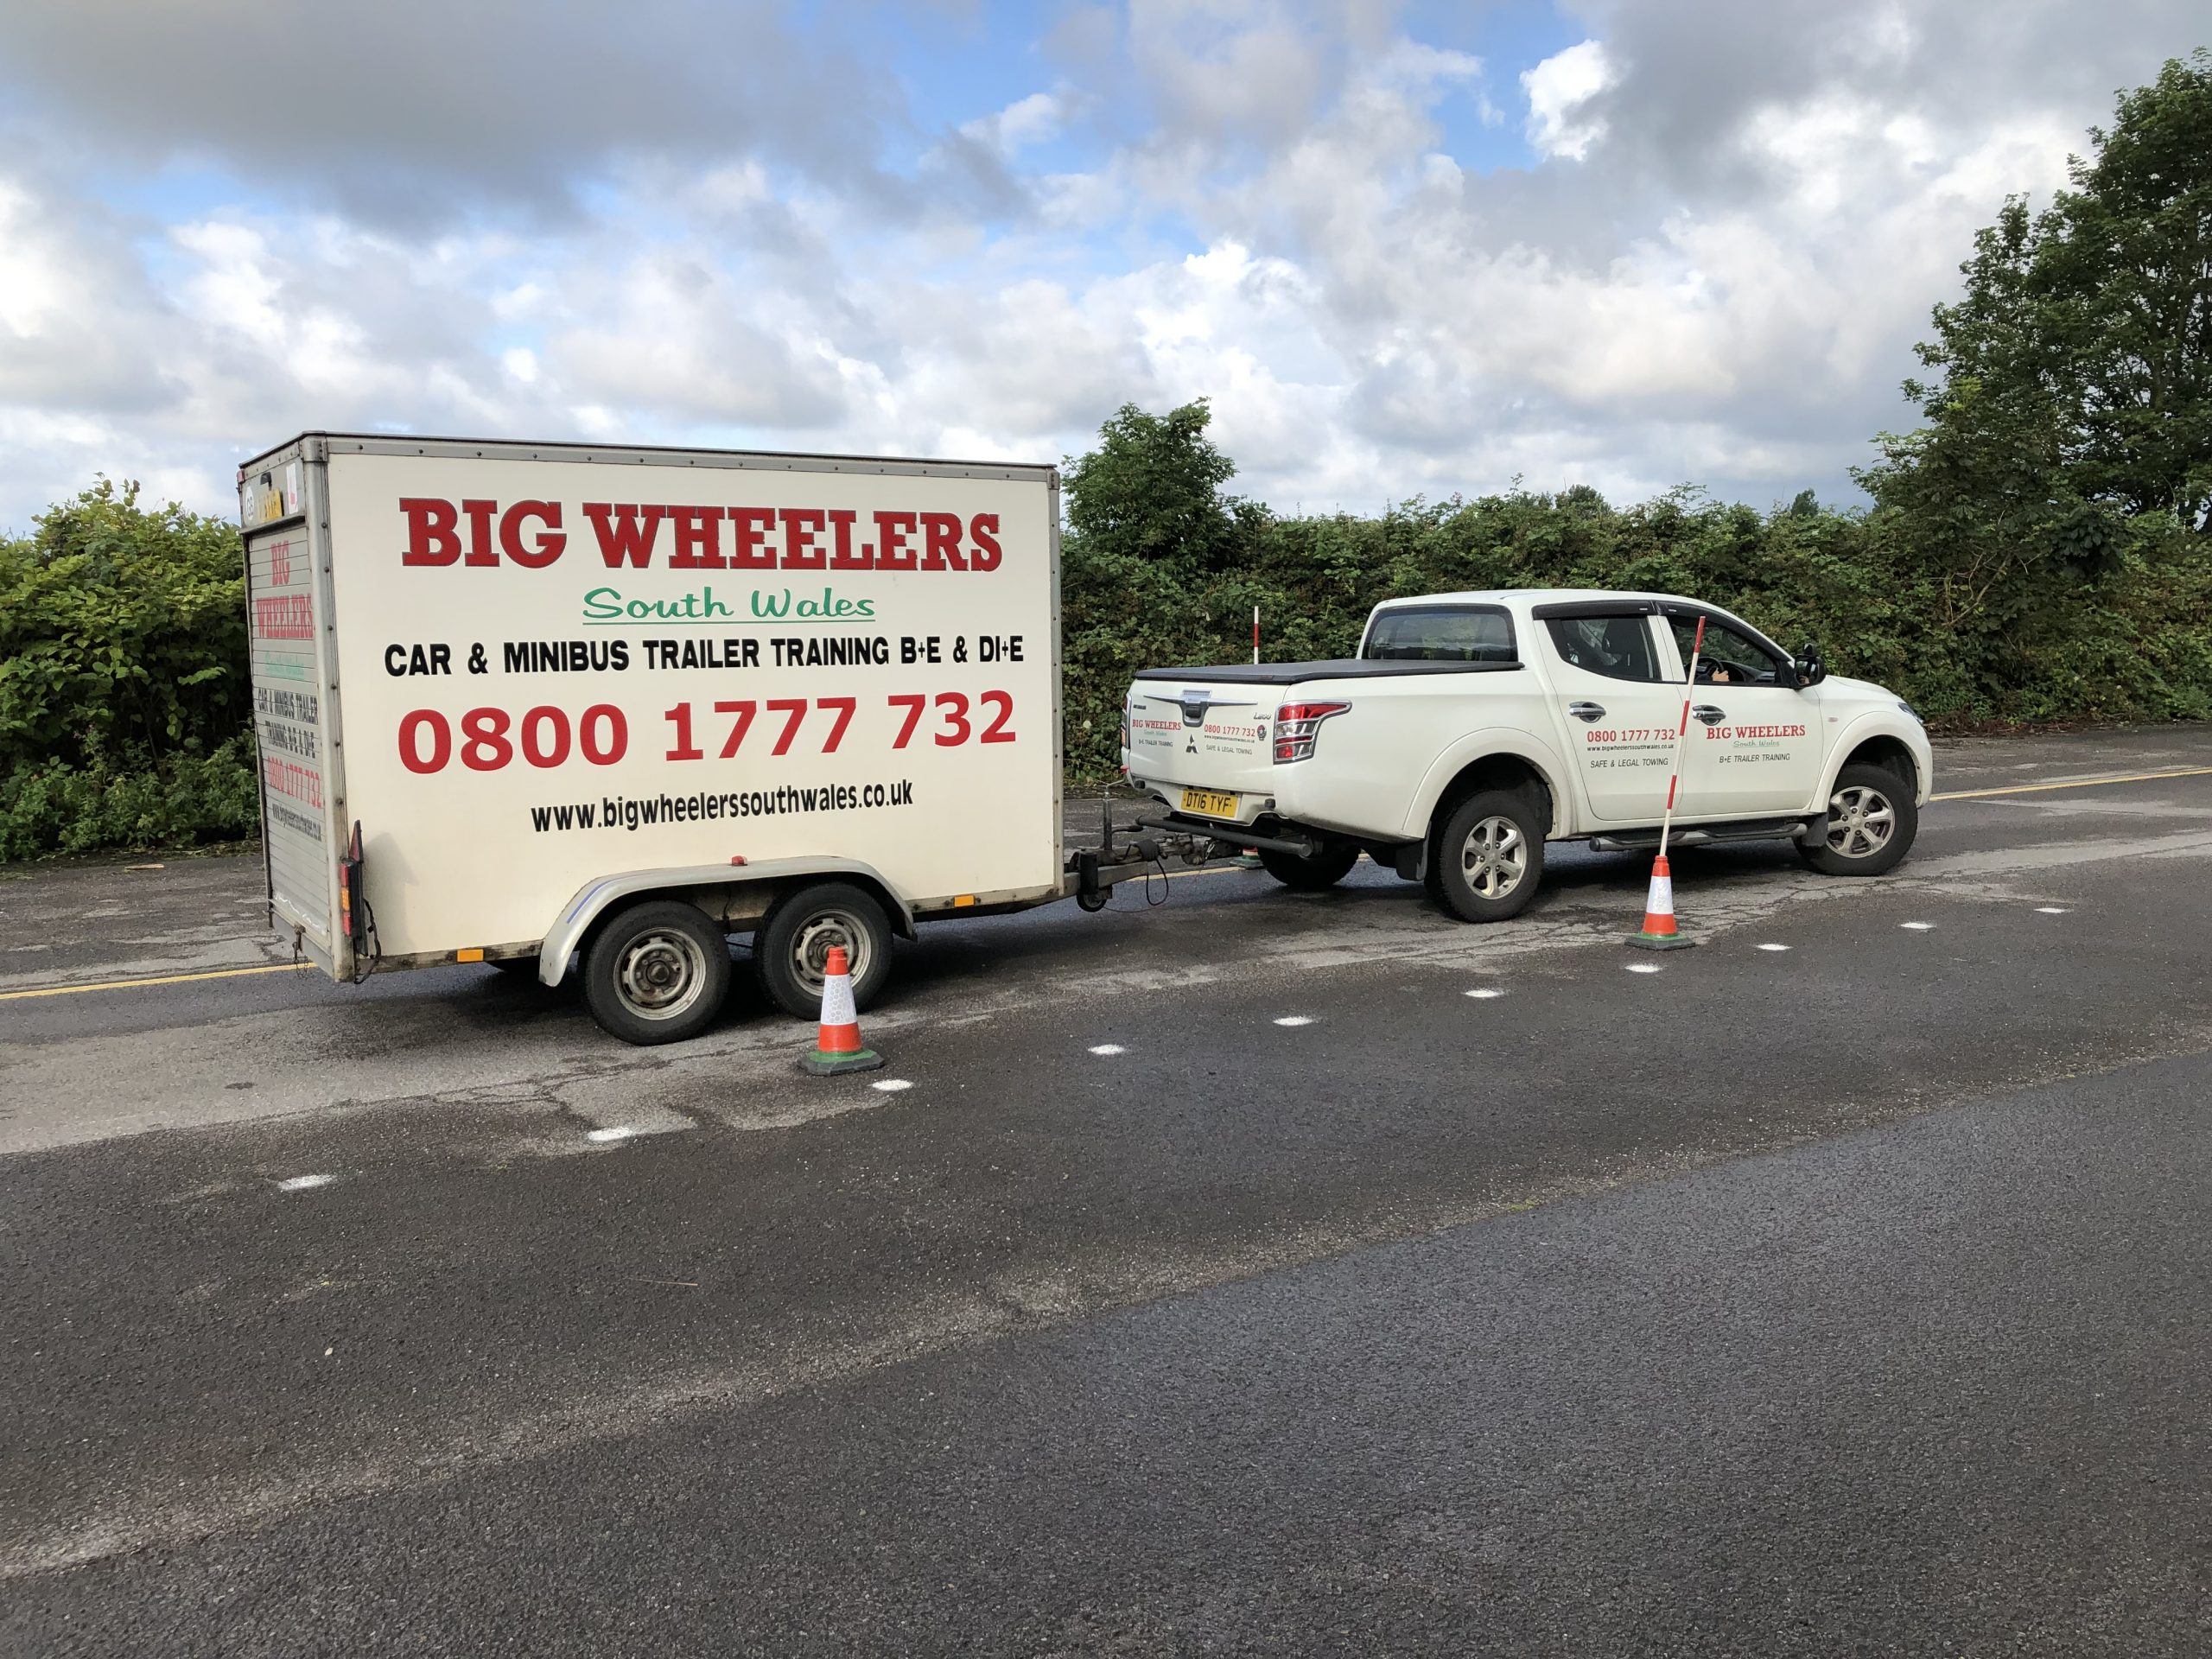 Half Day B+E Trailer Training (Using our vehicle and trailer)